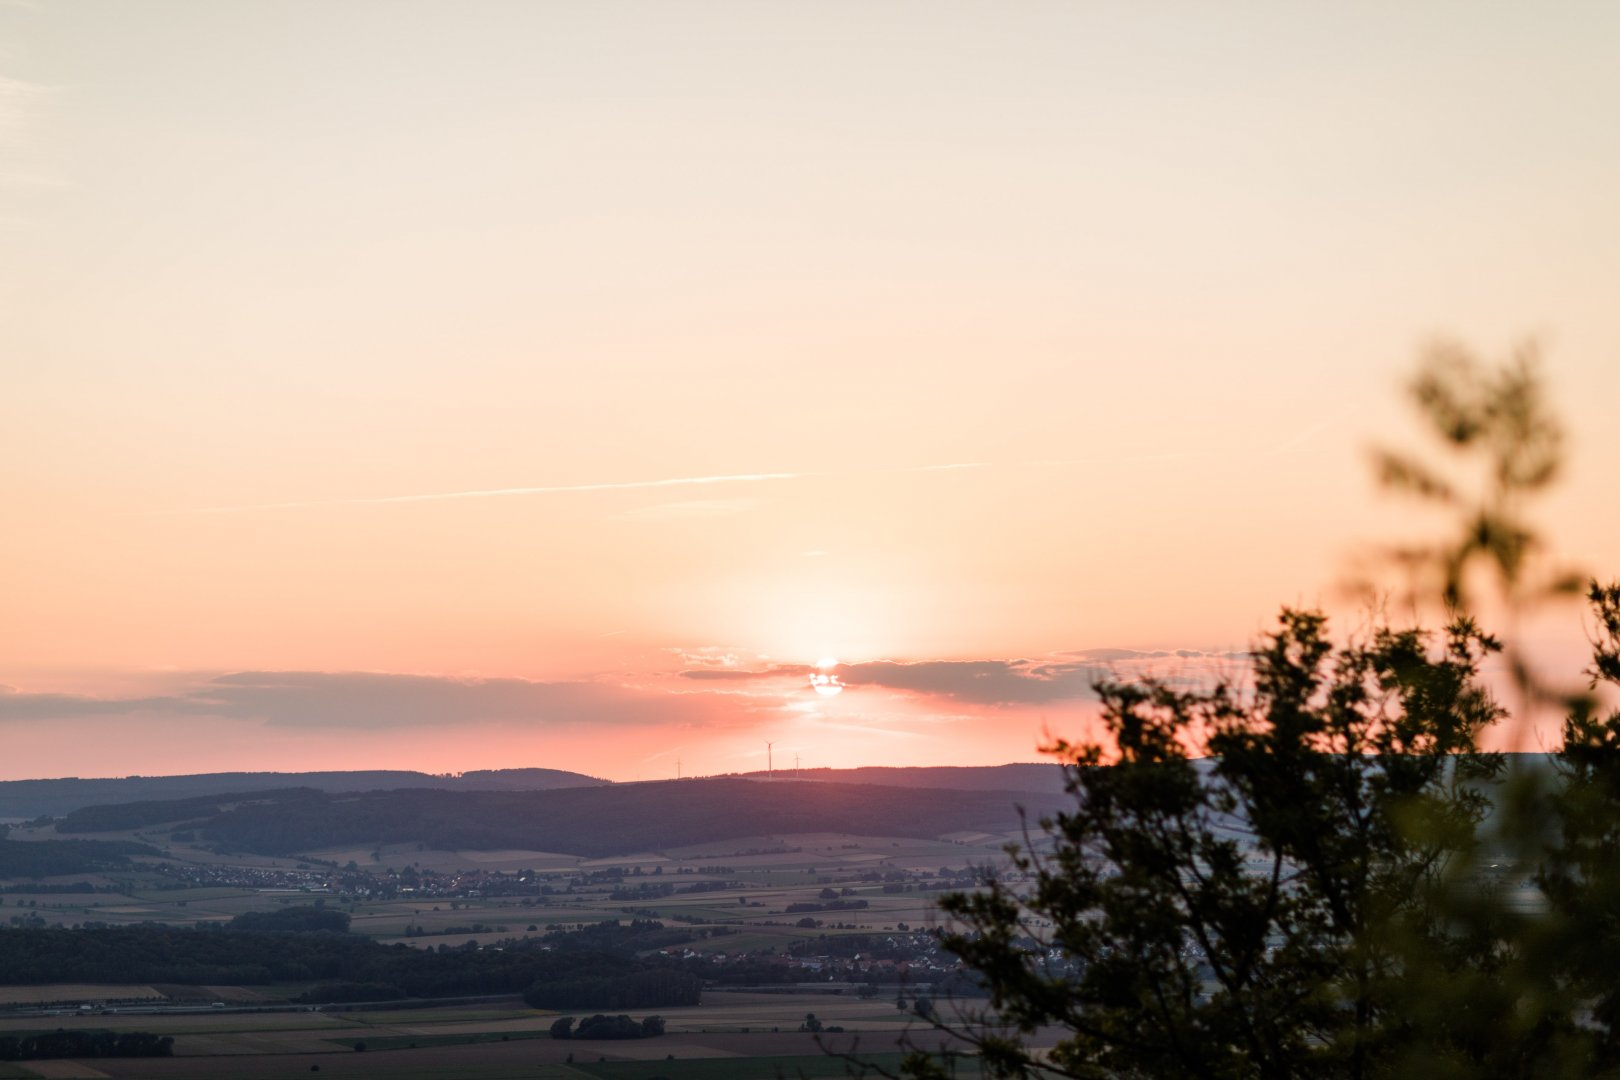 Sky Nature Horizon Sunset Afterglow Atmospheric phenomenon Cloud Evening Sunrise Morning Natural landscape Dusk Tree Atmosphere Sun Sunlight Red sky at morning Calm Hill station Hill Dawn Rural area Landscape Photography Branch Astronomical object Plant Meteorological phenomenon Heat Mountain